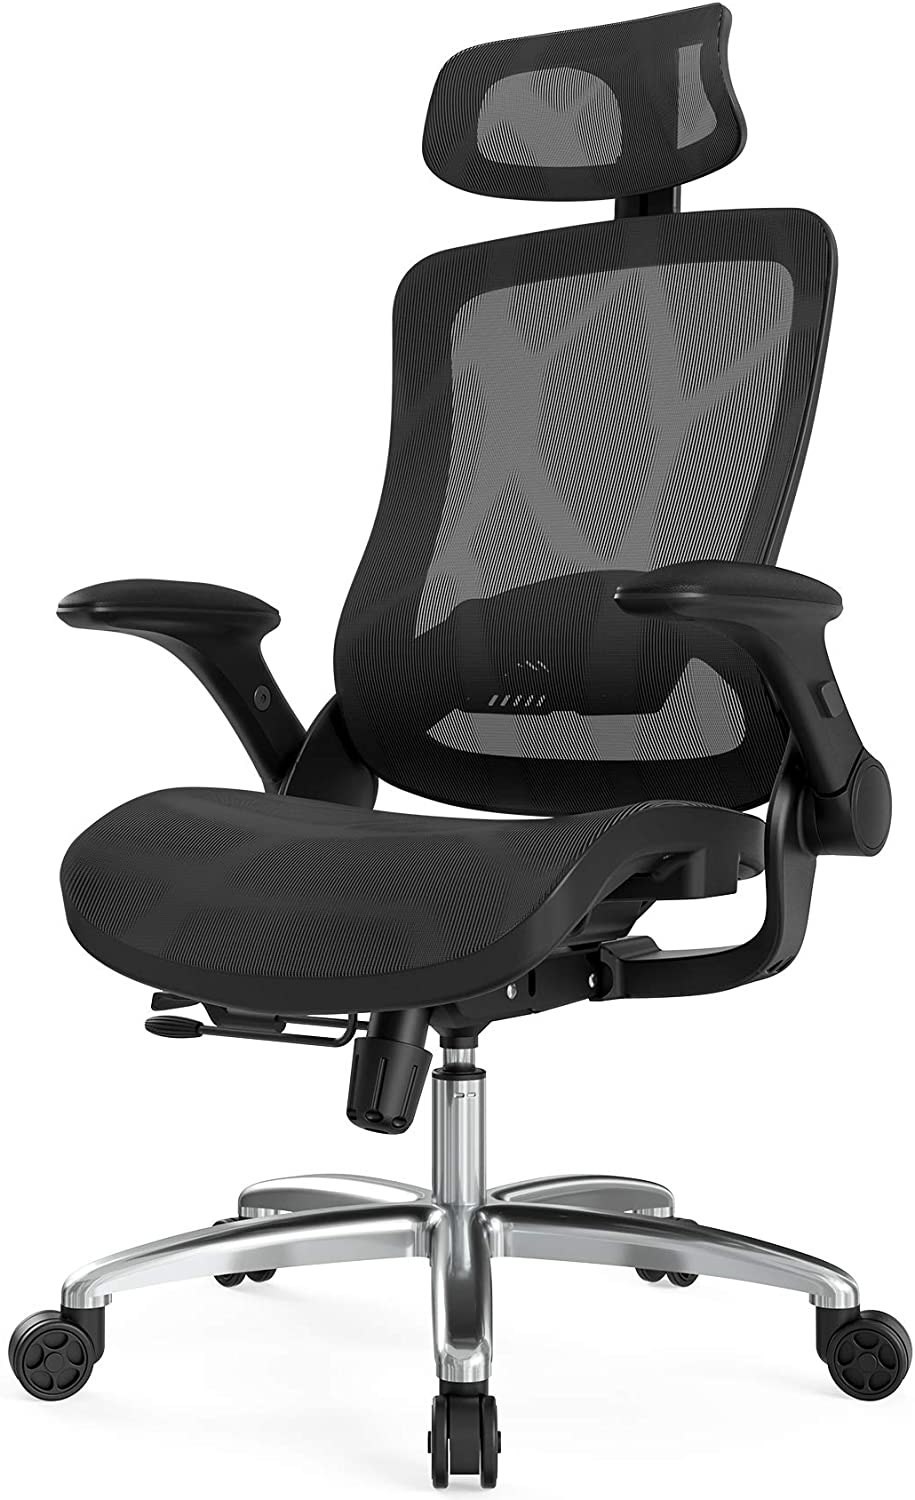 Hbada Ergonomice Office Chair, High-Back Mesh Desk Chair, Height Adjustable Executive Chair with Flip-Up Padded Armrest, Breathable Task Chair with Adjustable Headrest and Lumbar Support, Black.